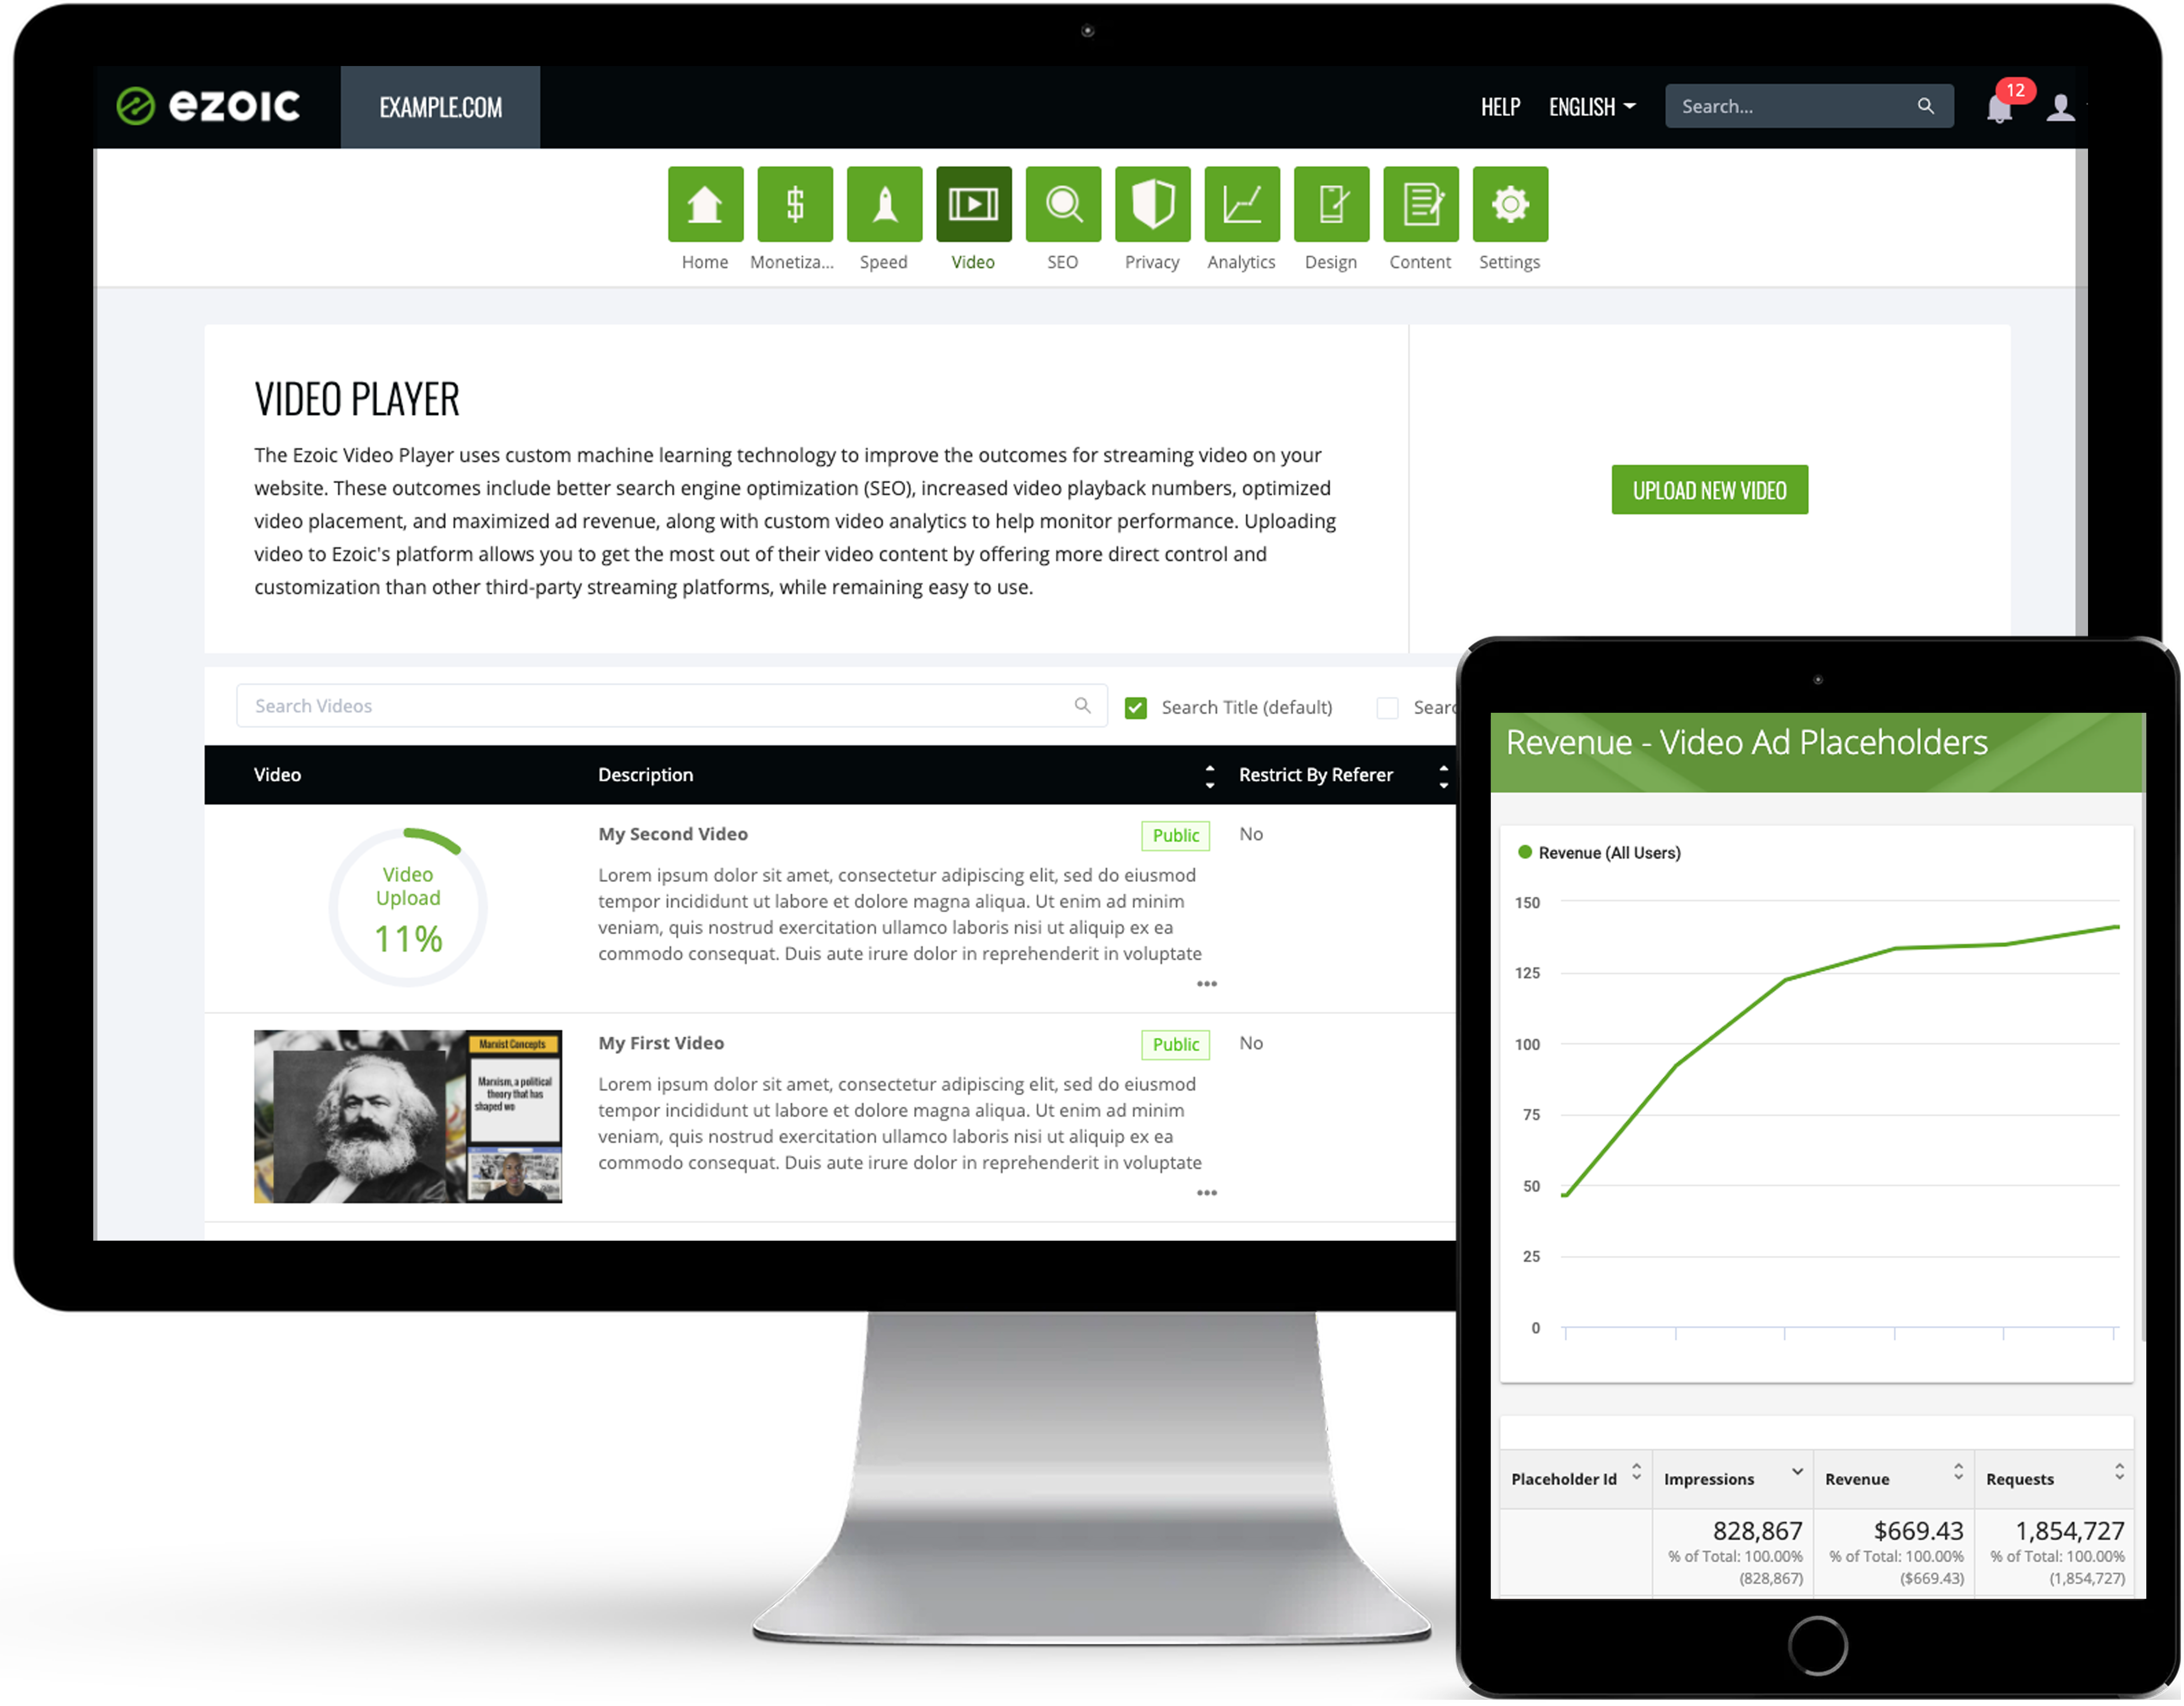 Earn more for your ad inventory with Ezoic Video